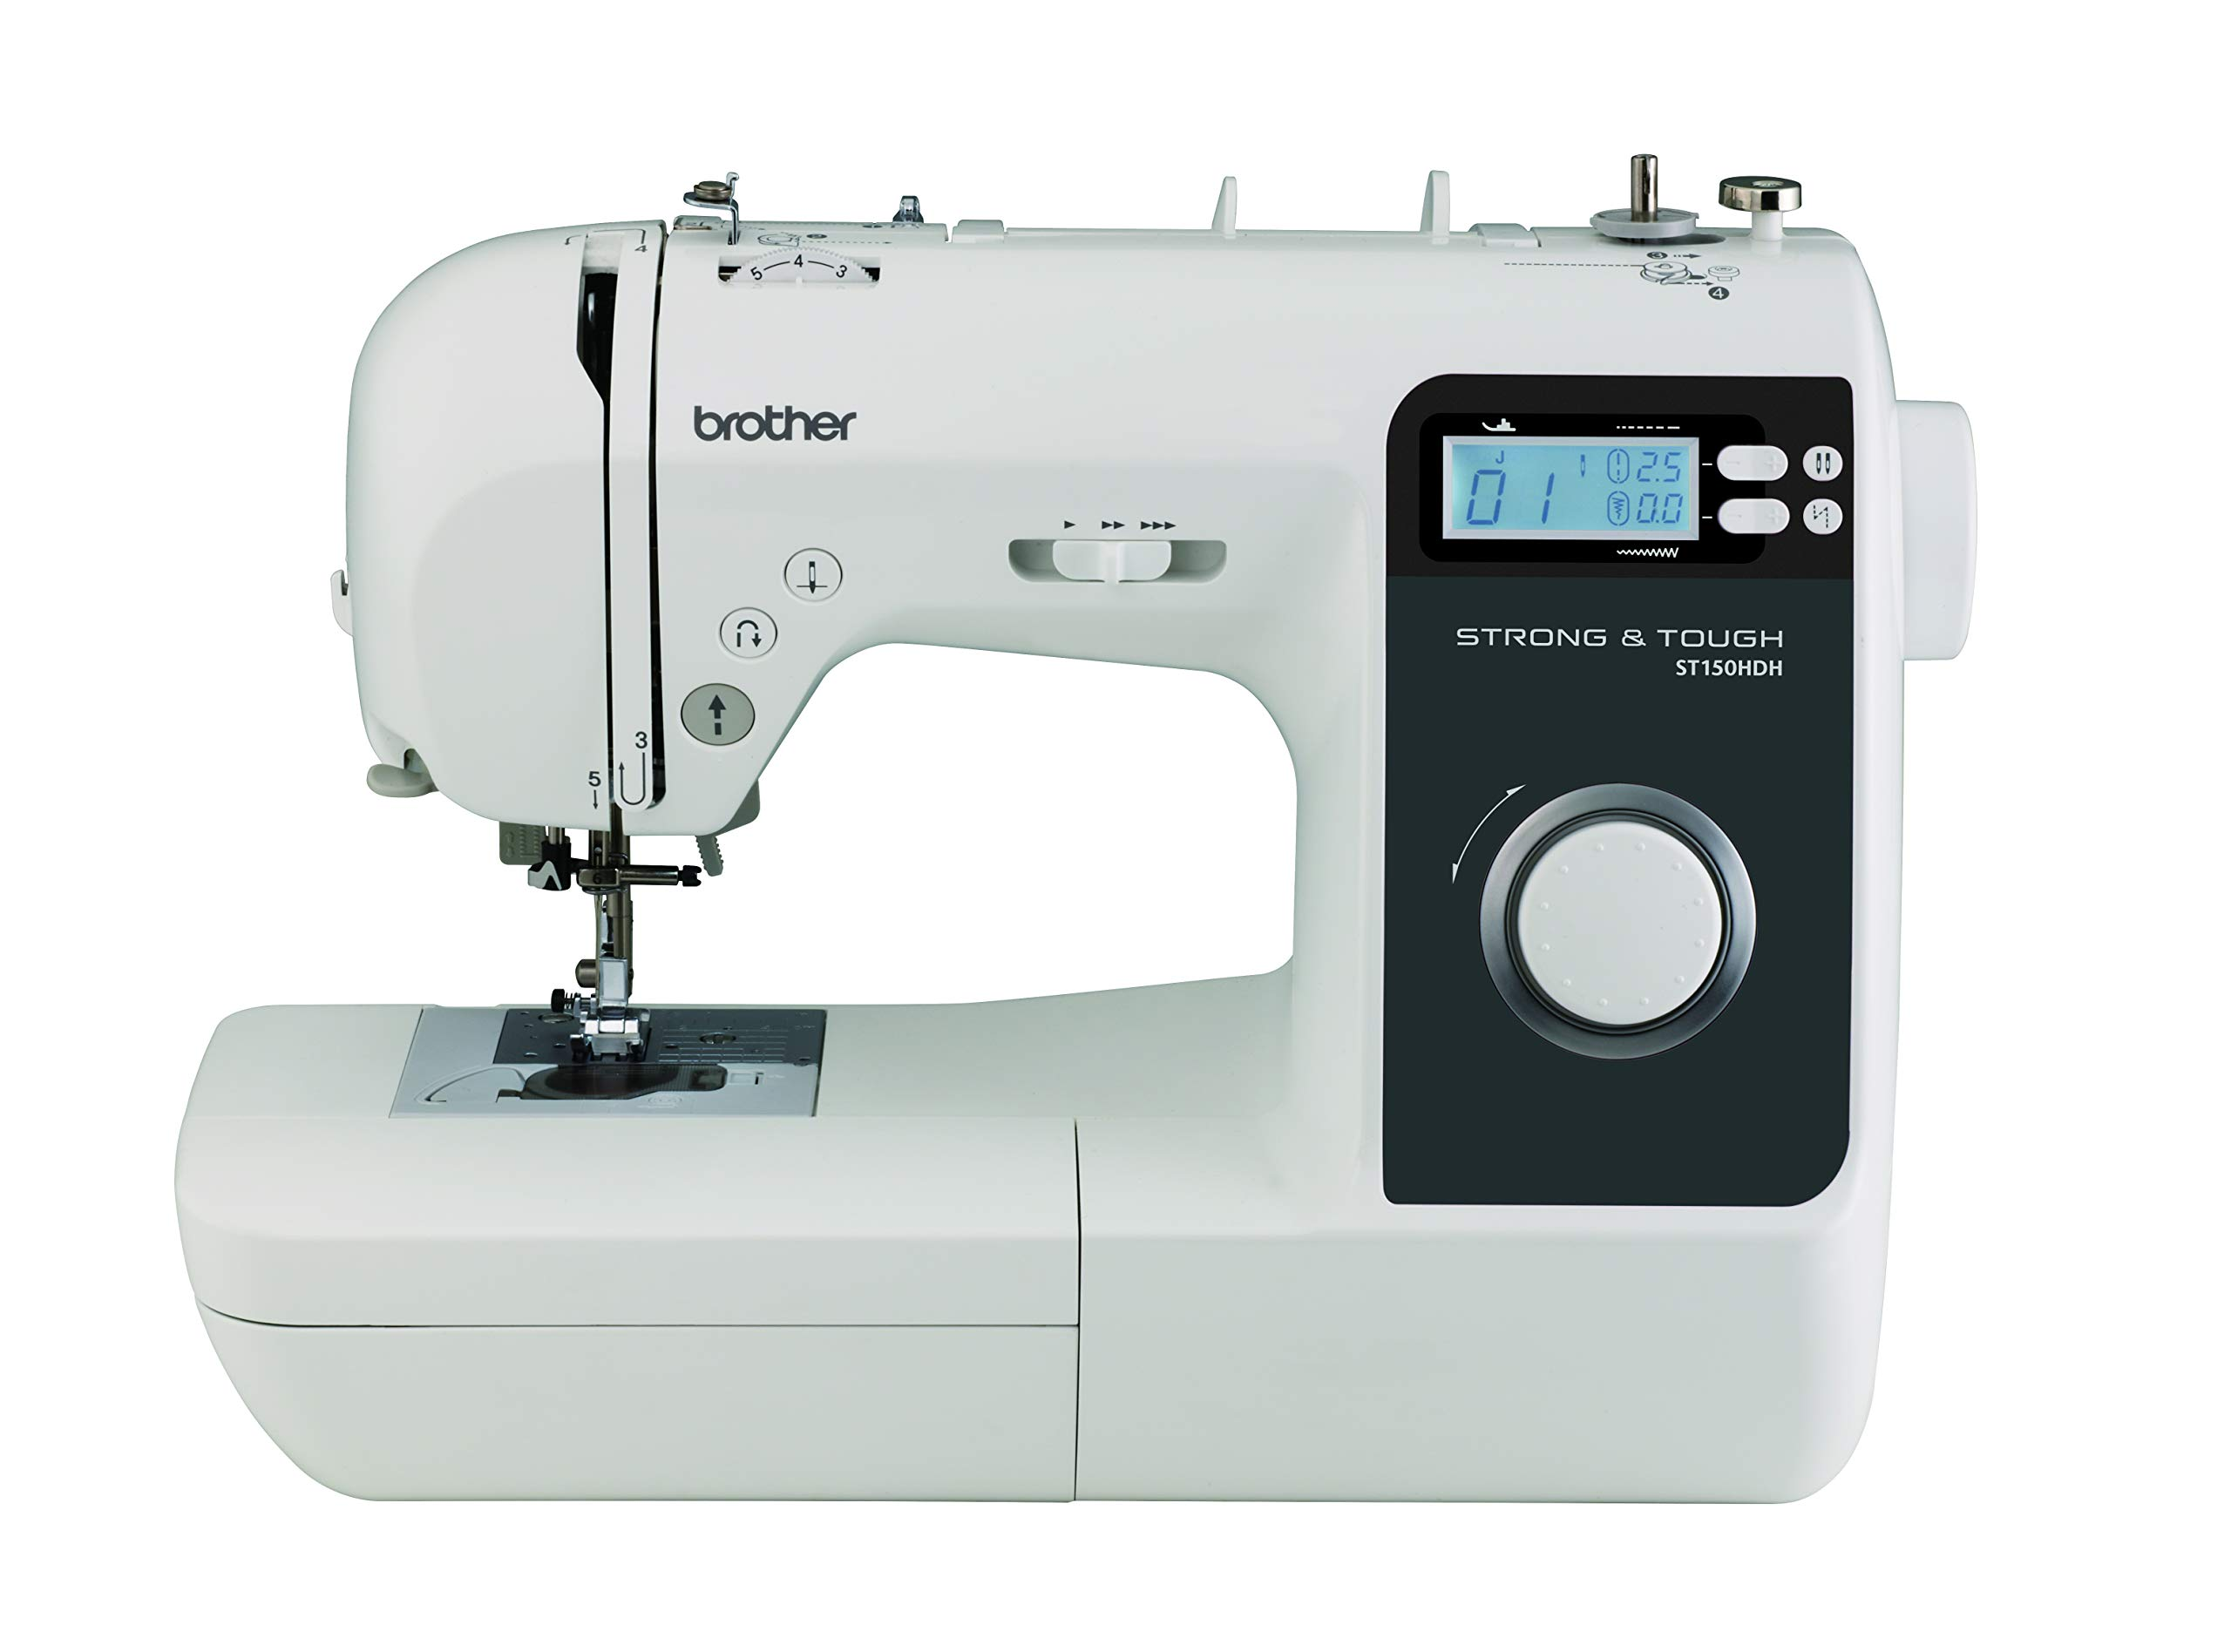 Brother ST150HDH Strong and Tough Computerized Sewing Machine, White by Brother